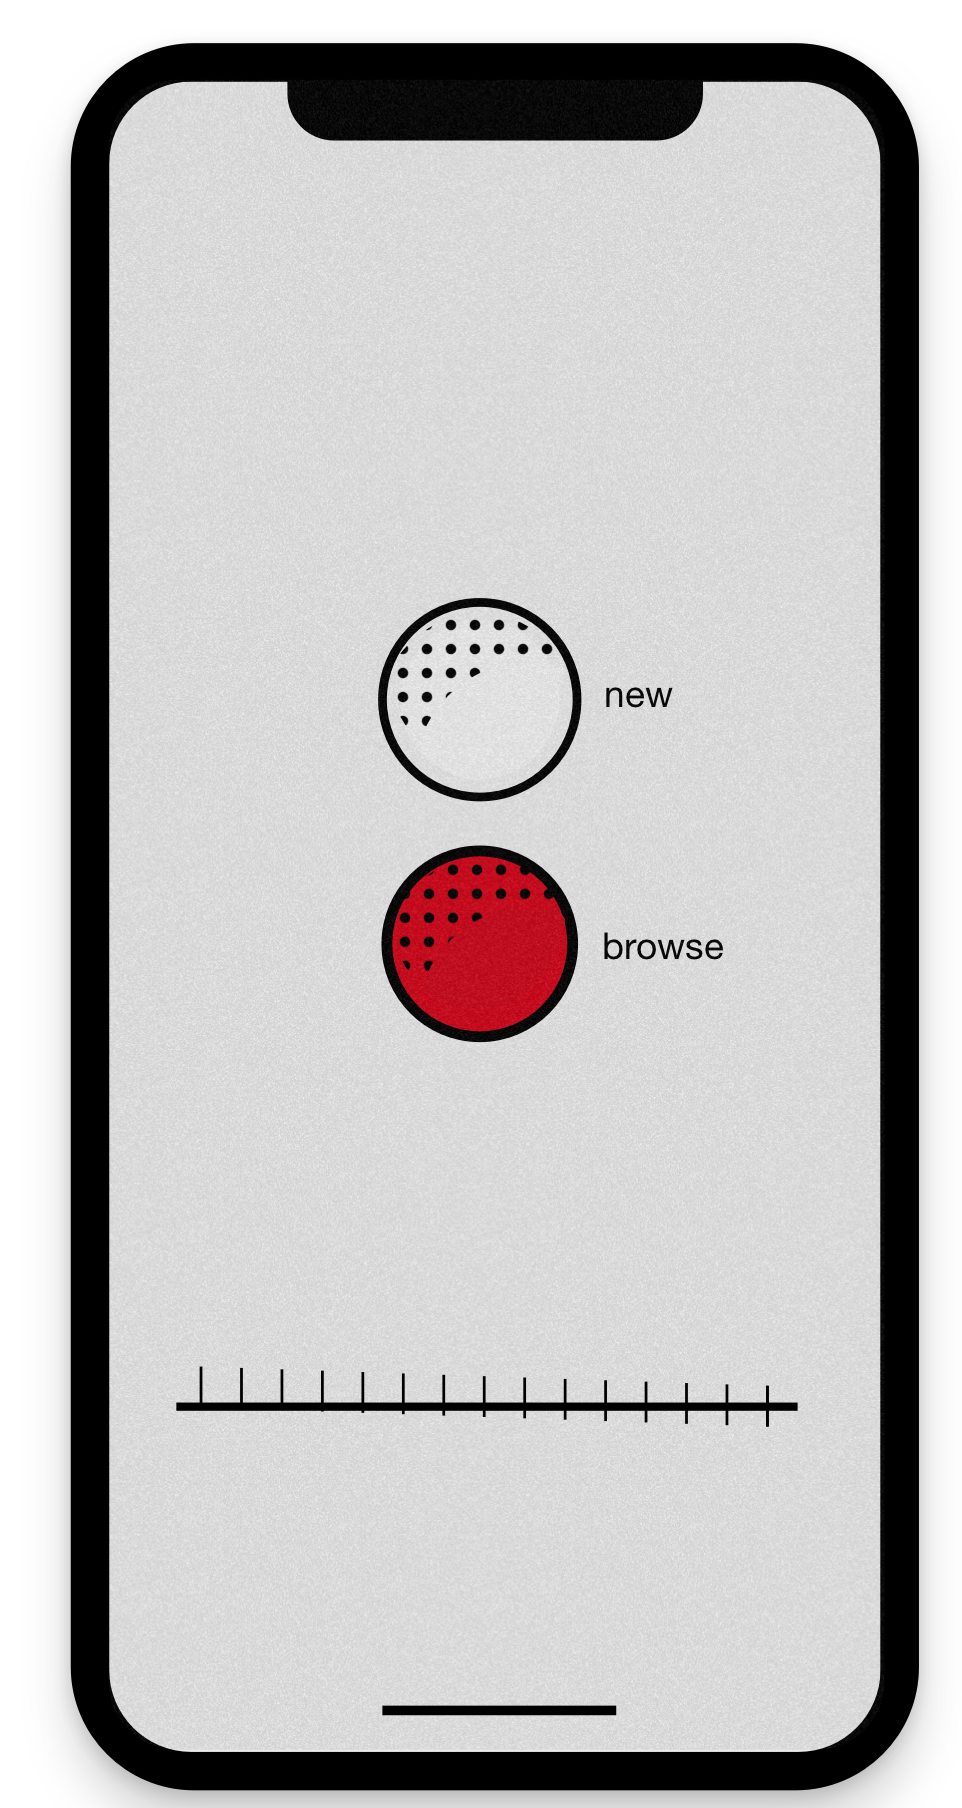 screens/interfaces3.png